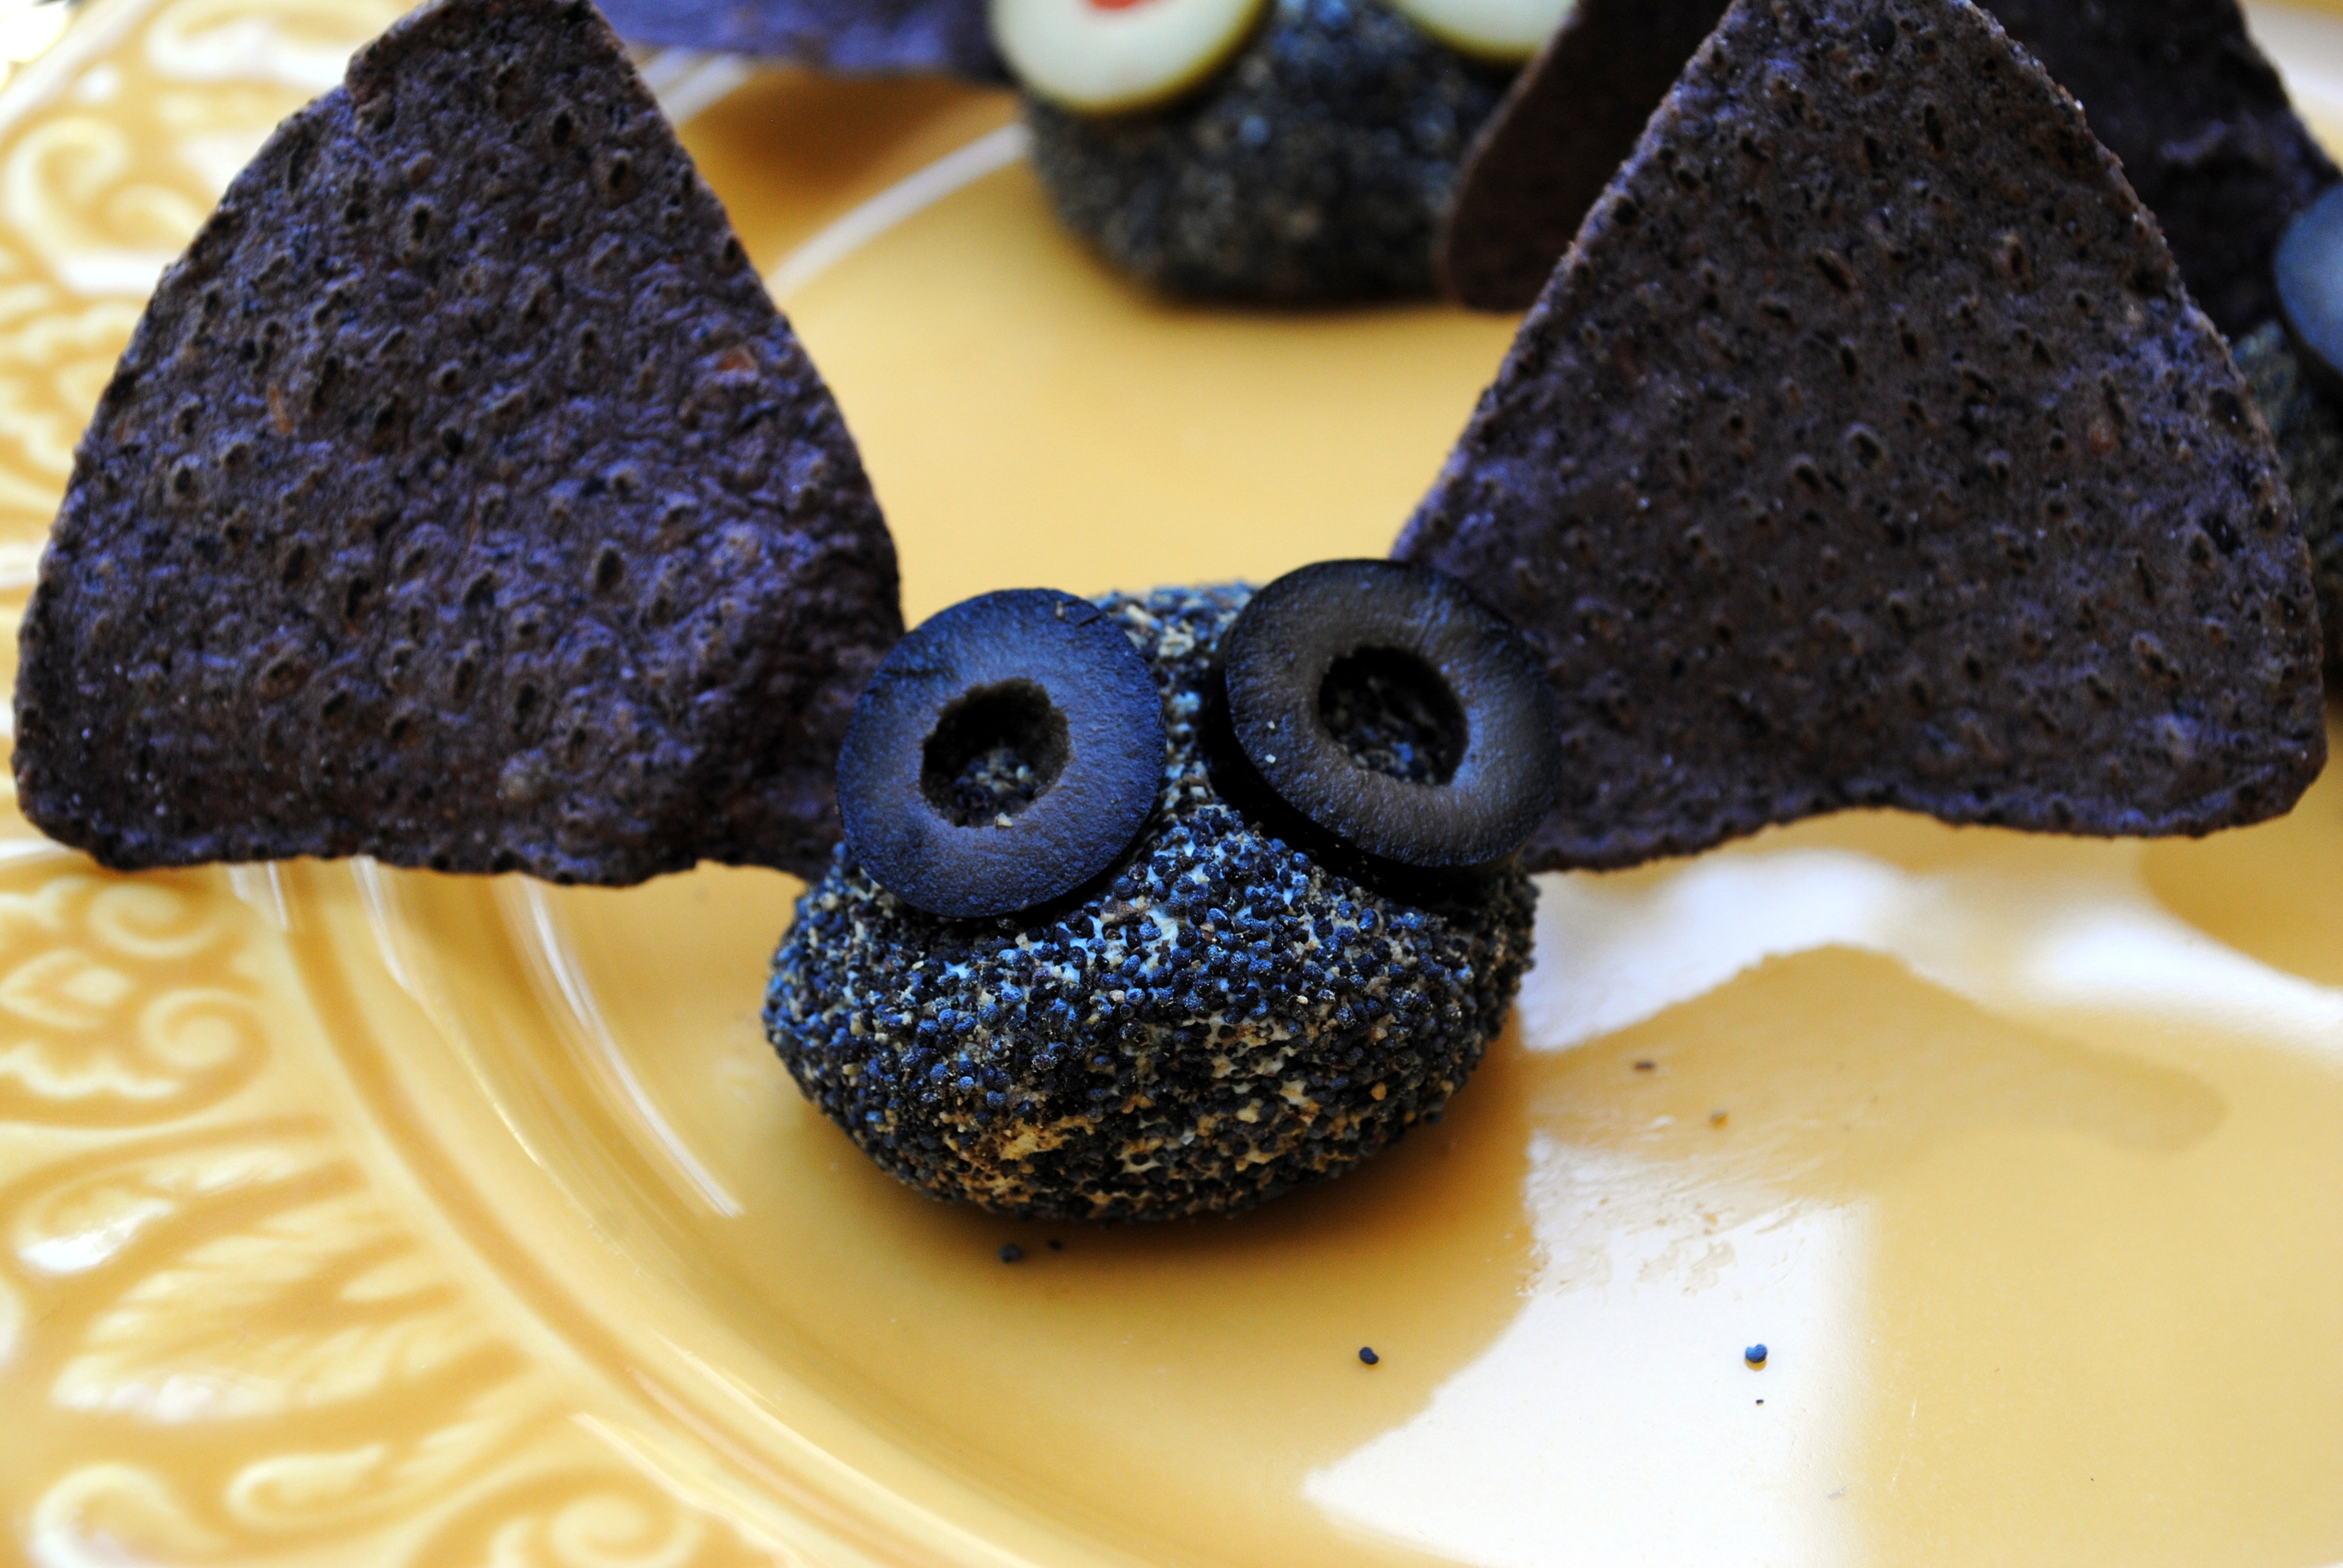 Photos of Bat Bites http://clarecooks.wordpress.com/2011/10/28/halloween-savory-snacks-bat-bites-witches-fingers/